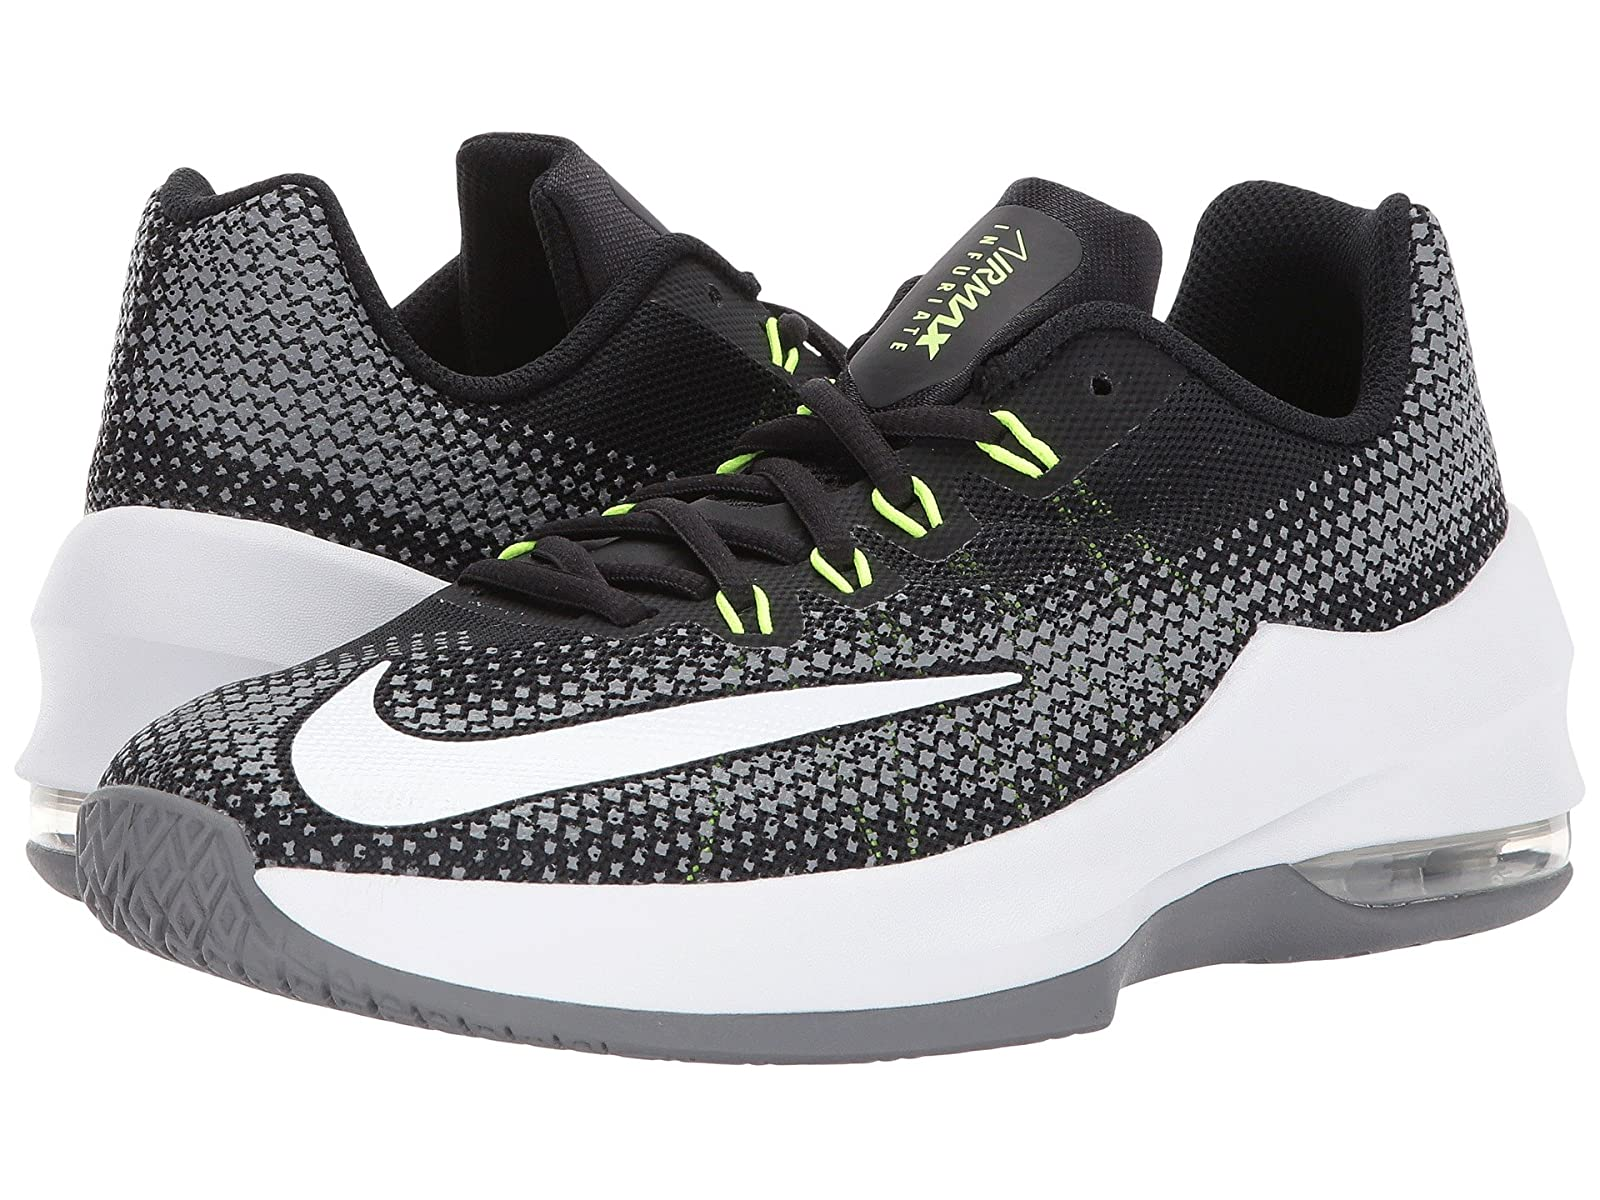 Nike Kids Air Max Infuriate Basketball (Big Kid)Atmospheric grades have affordable shoes